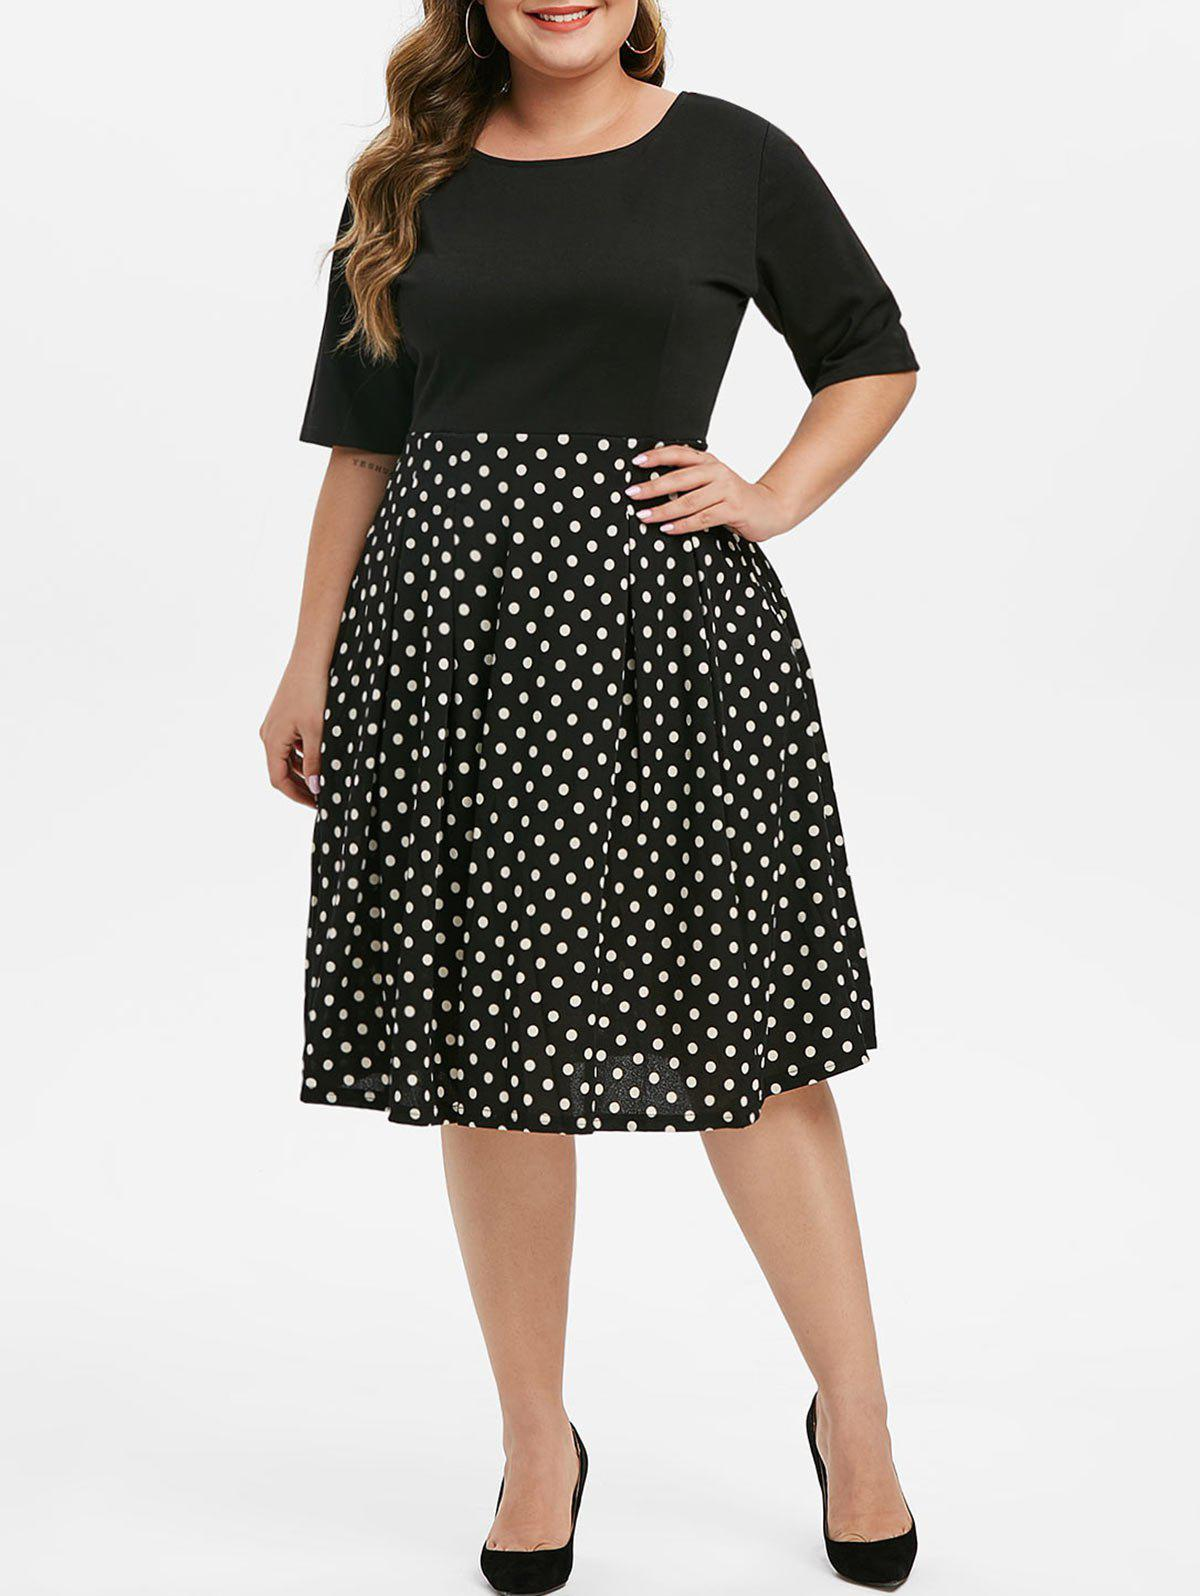 Contrast Polka Dot Back Zipper A Line Plus Size Dress - BLACK 1X